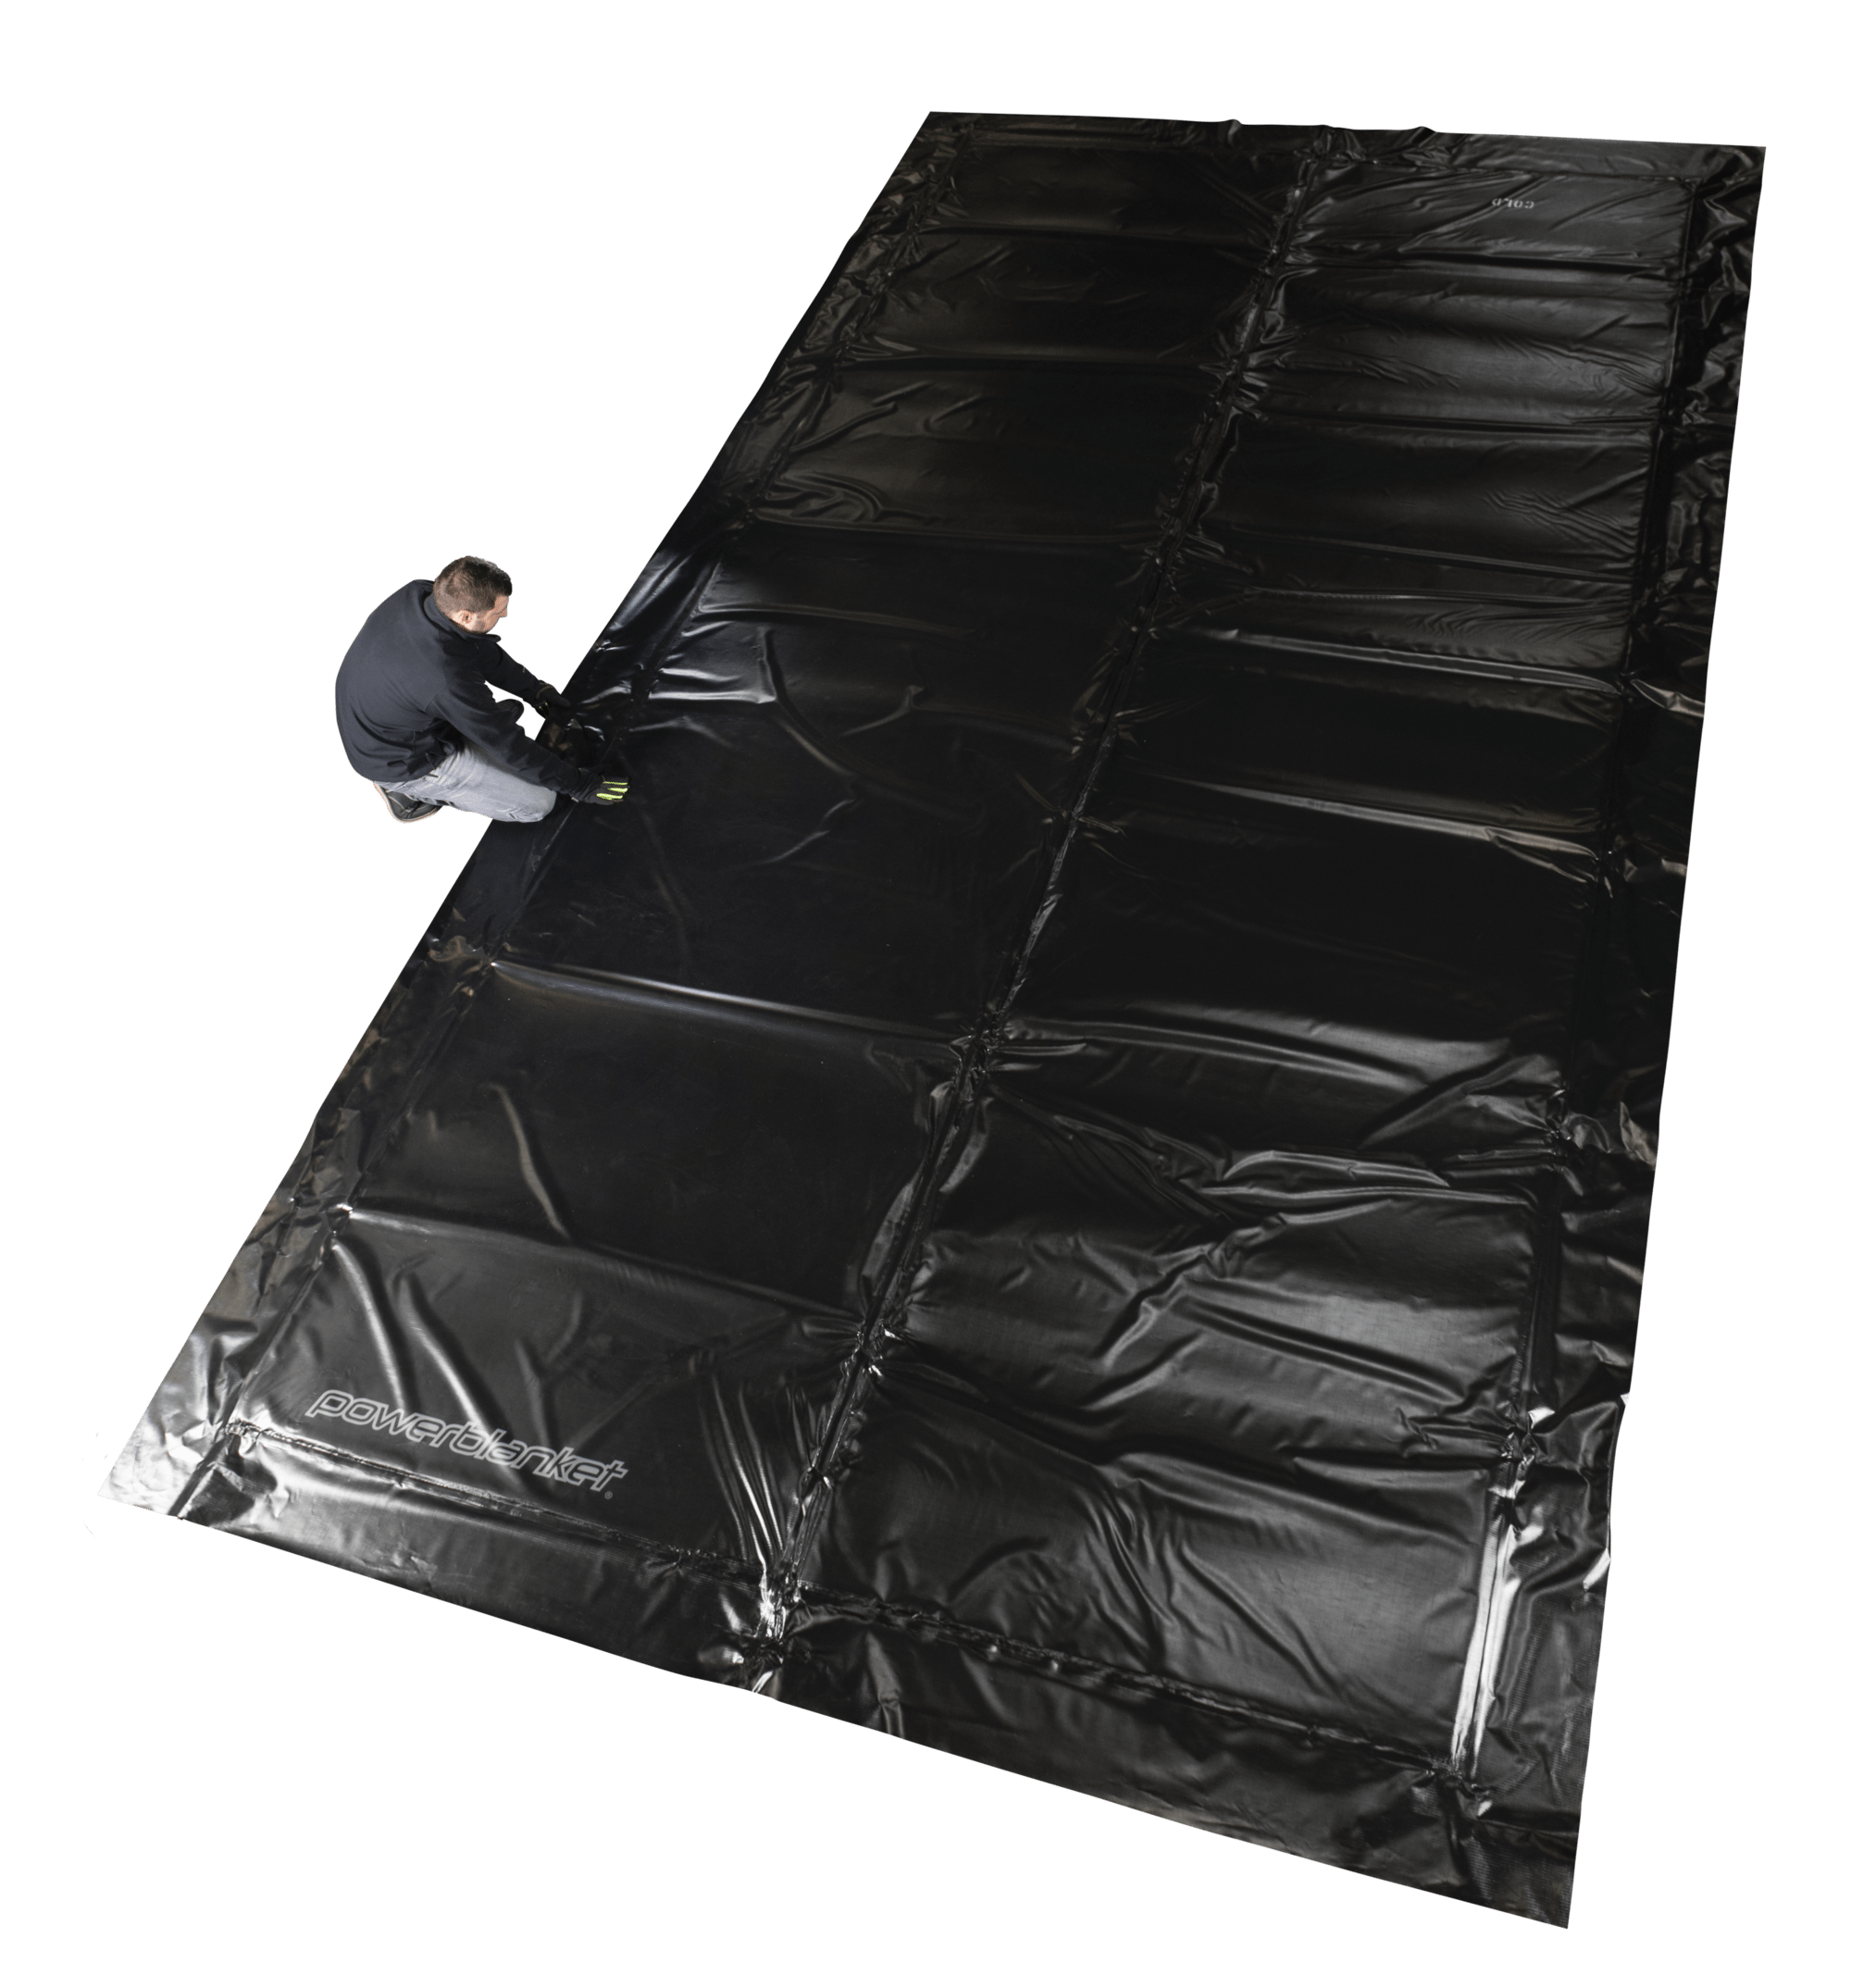 Curing Cold Concrete: Electric vs. Insulated Blankets